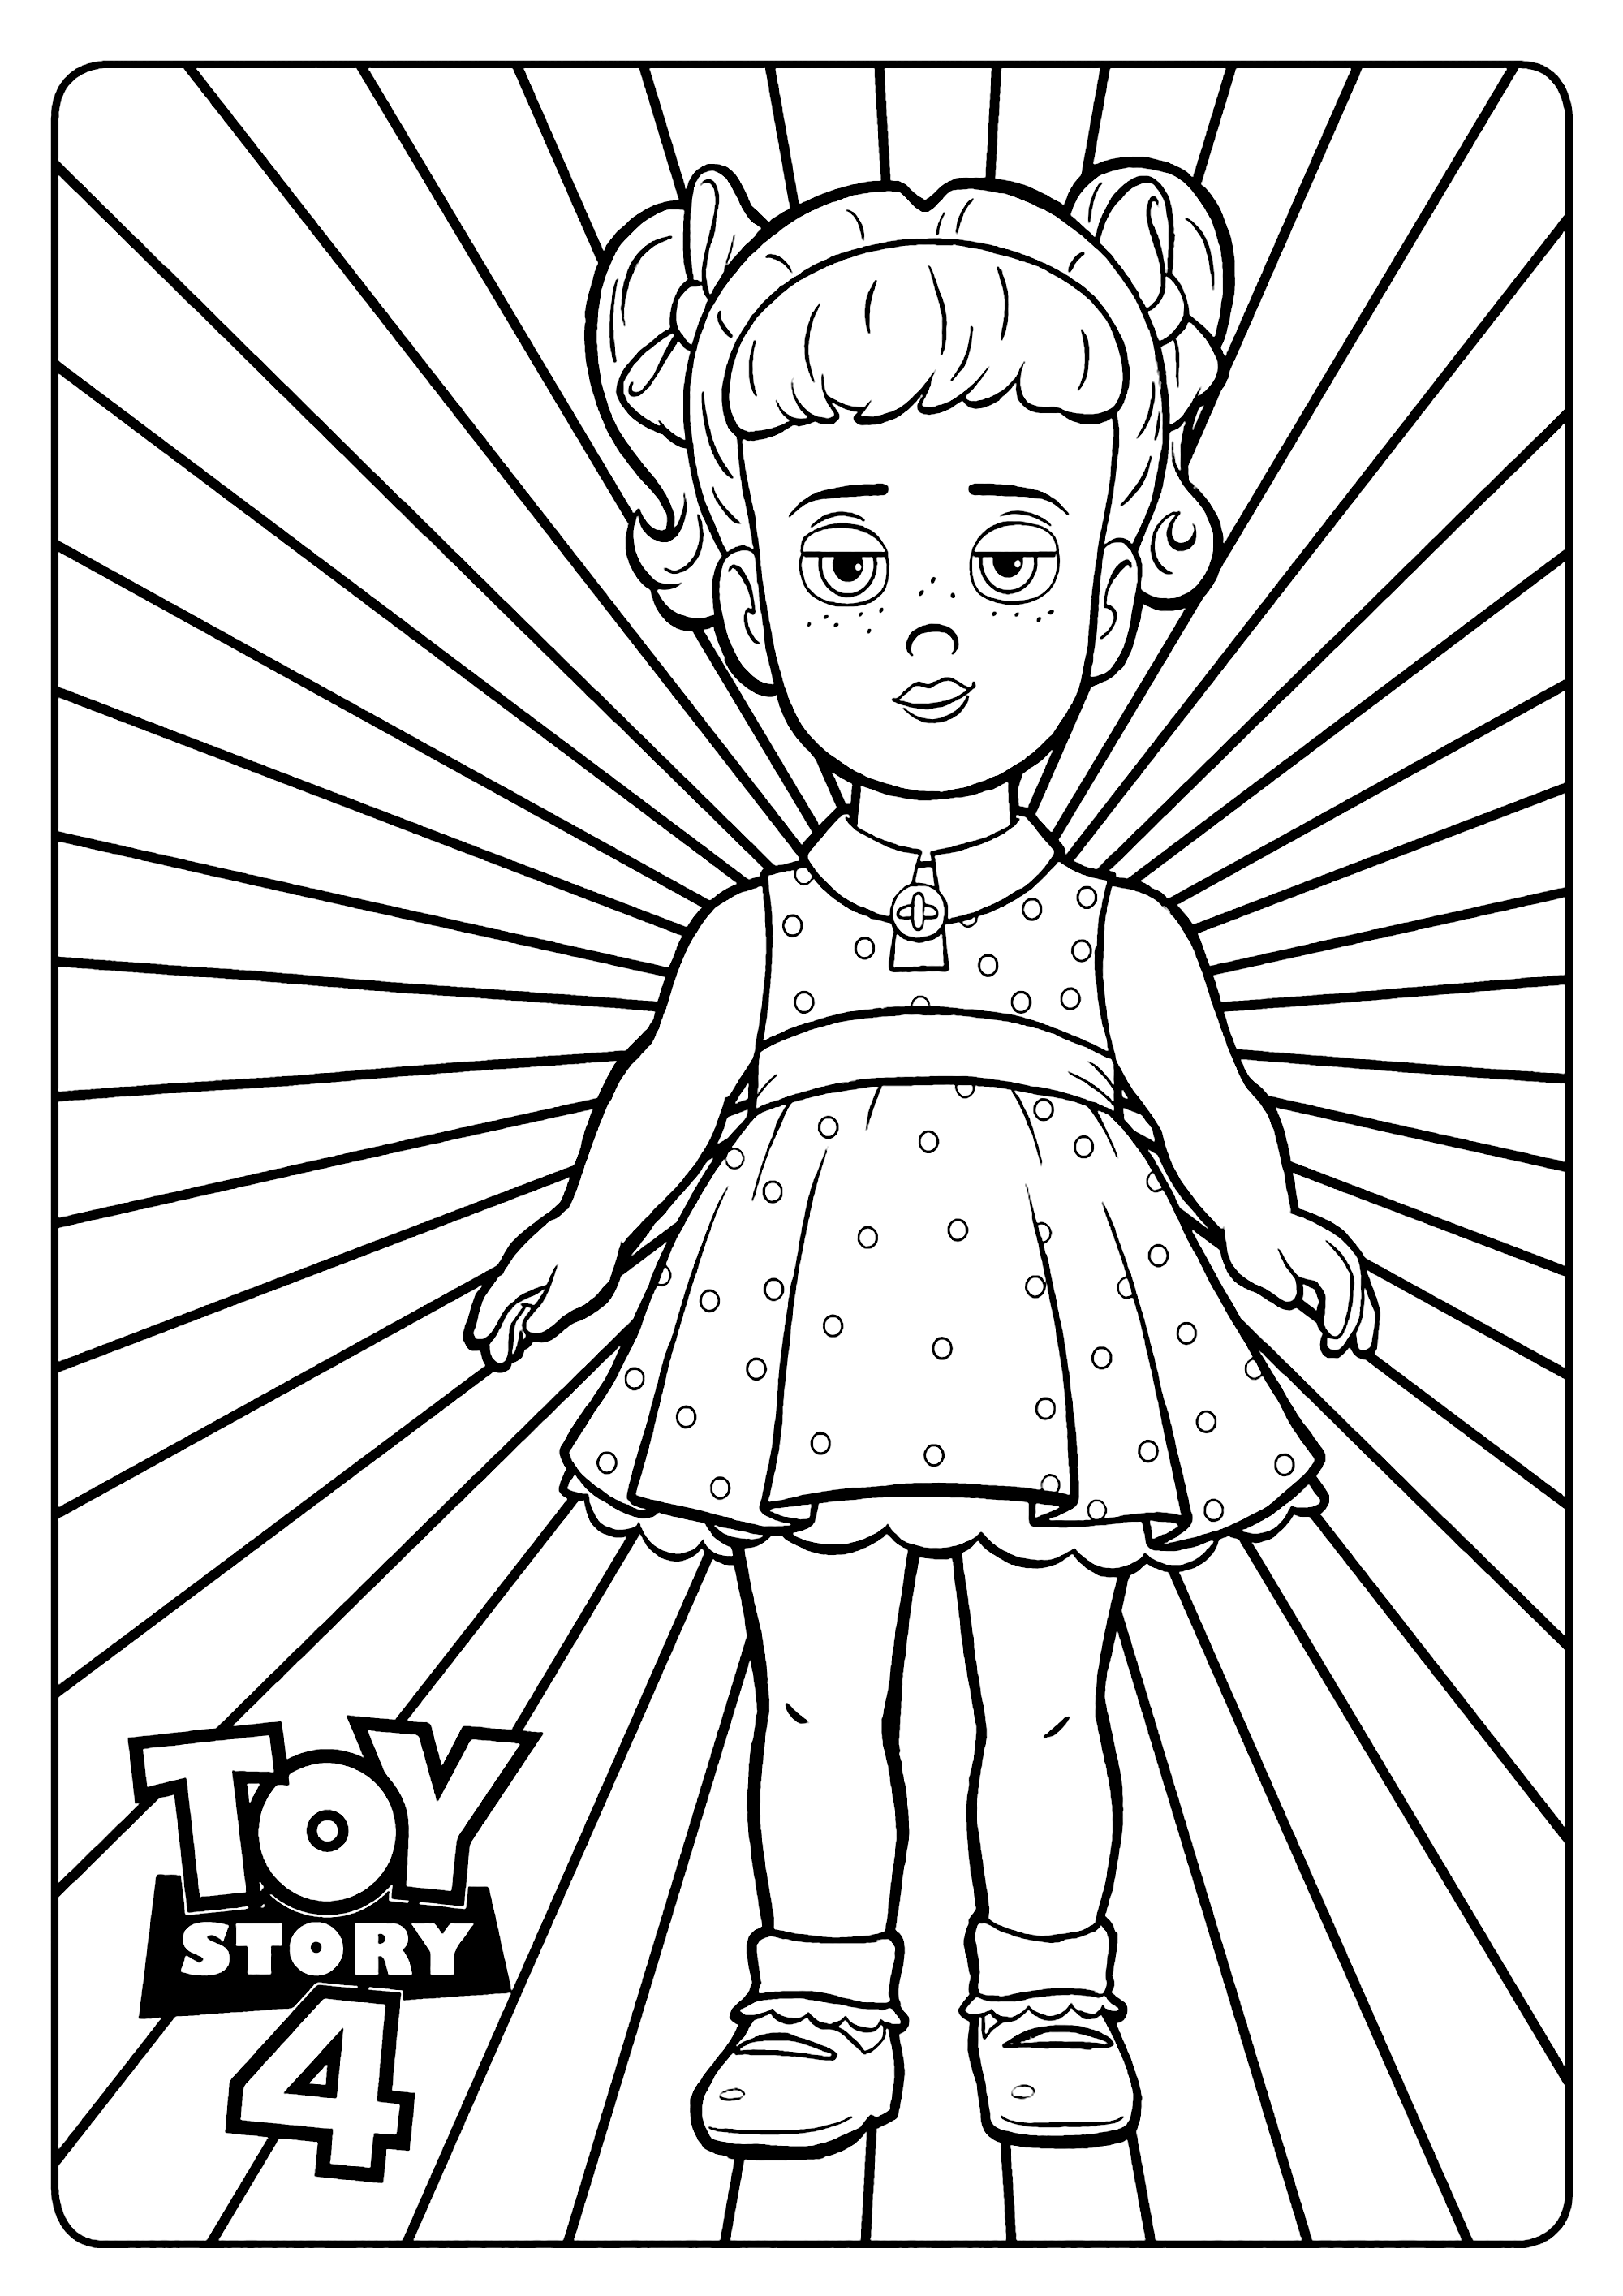 toy story 4 printable coloring pages toy story 4 coloring pages best coloring pages for kids pages story toy coloring printable 4